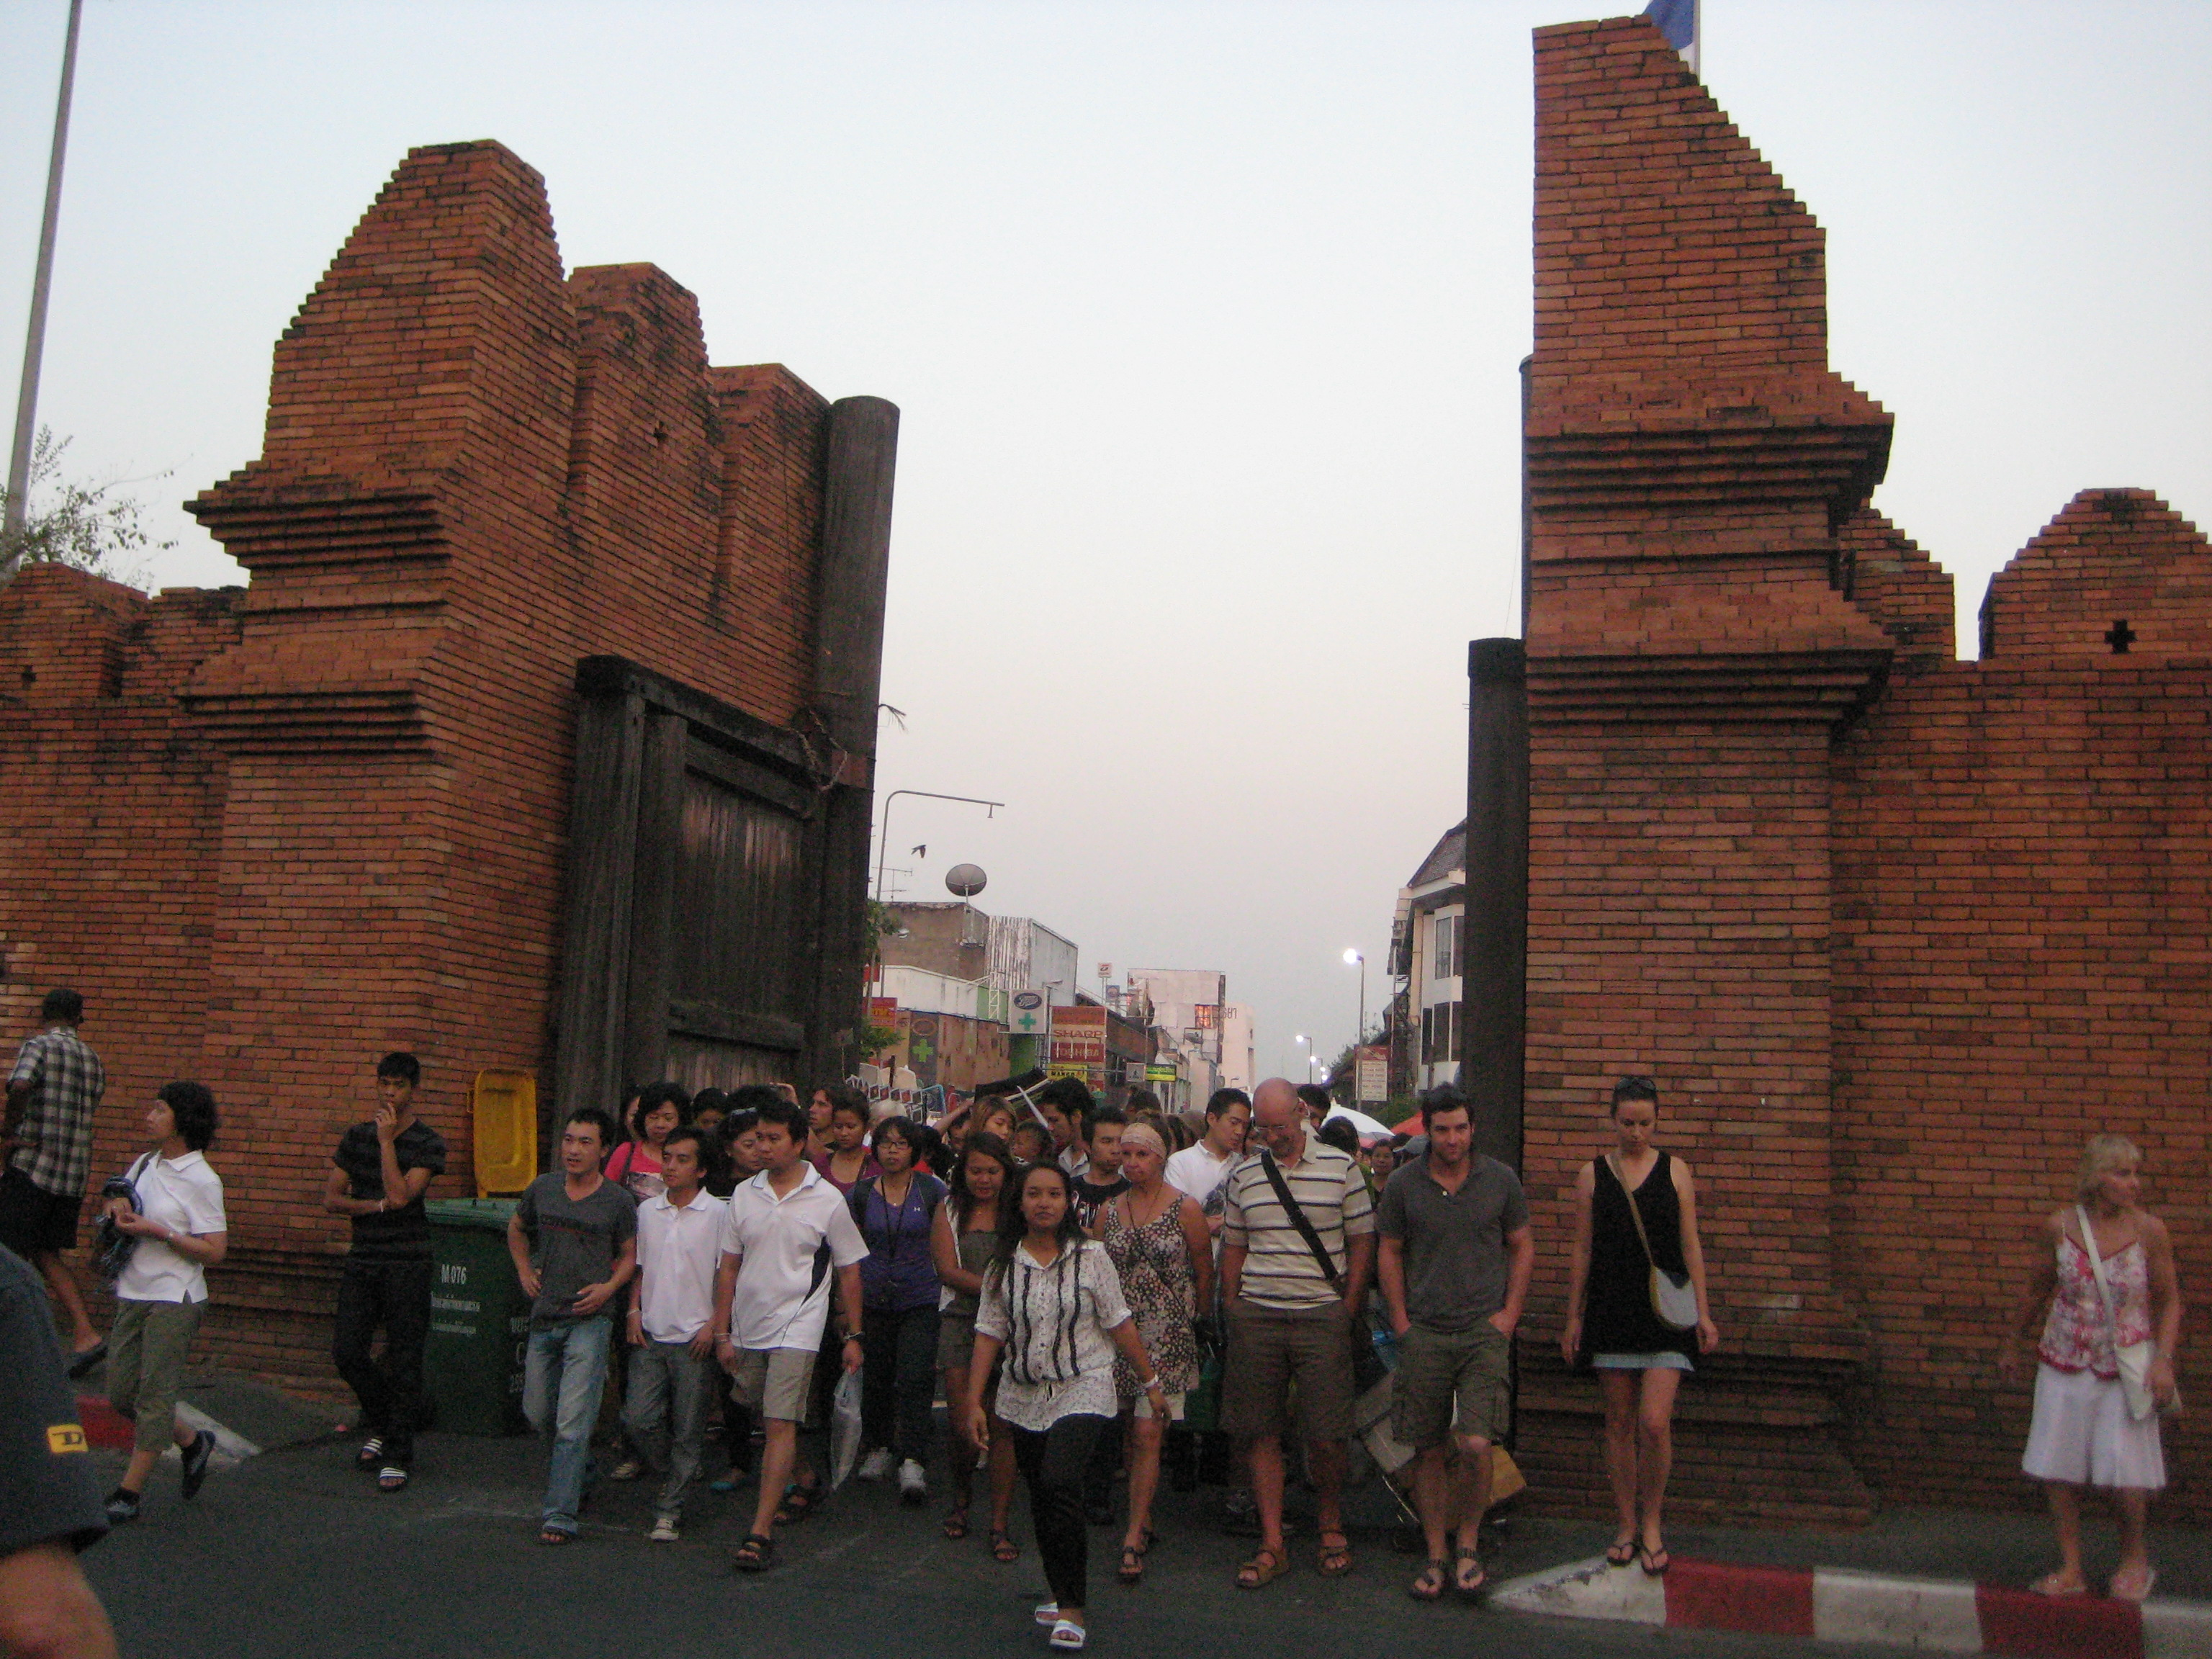 Chiang Mai City Gates